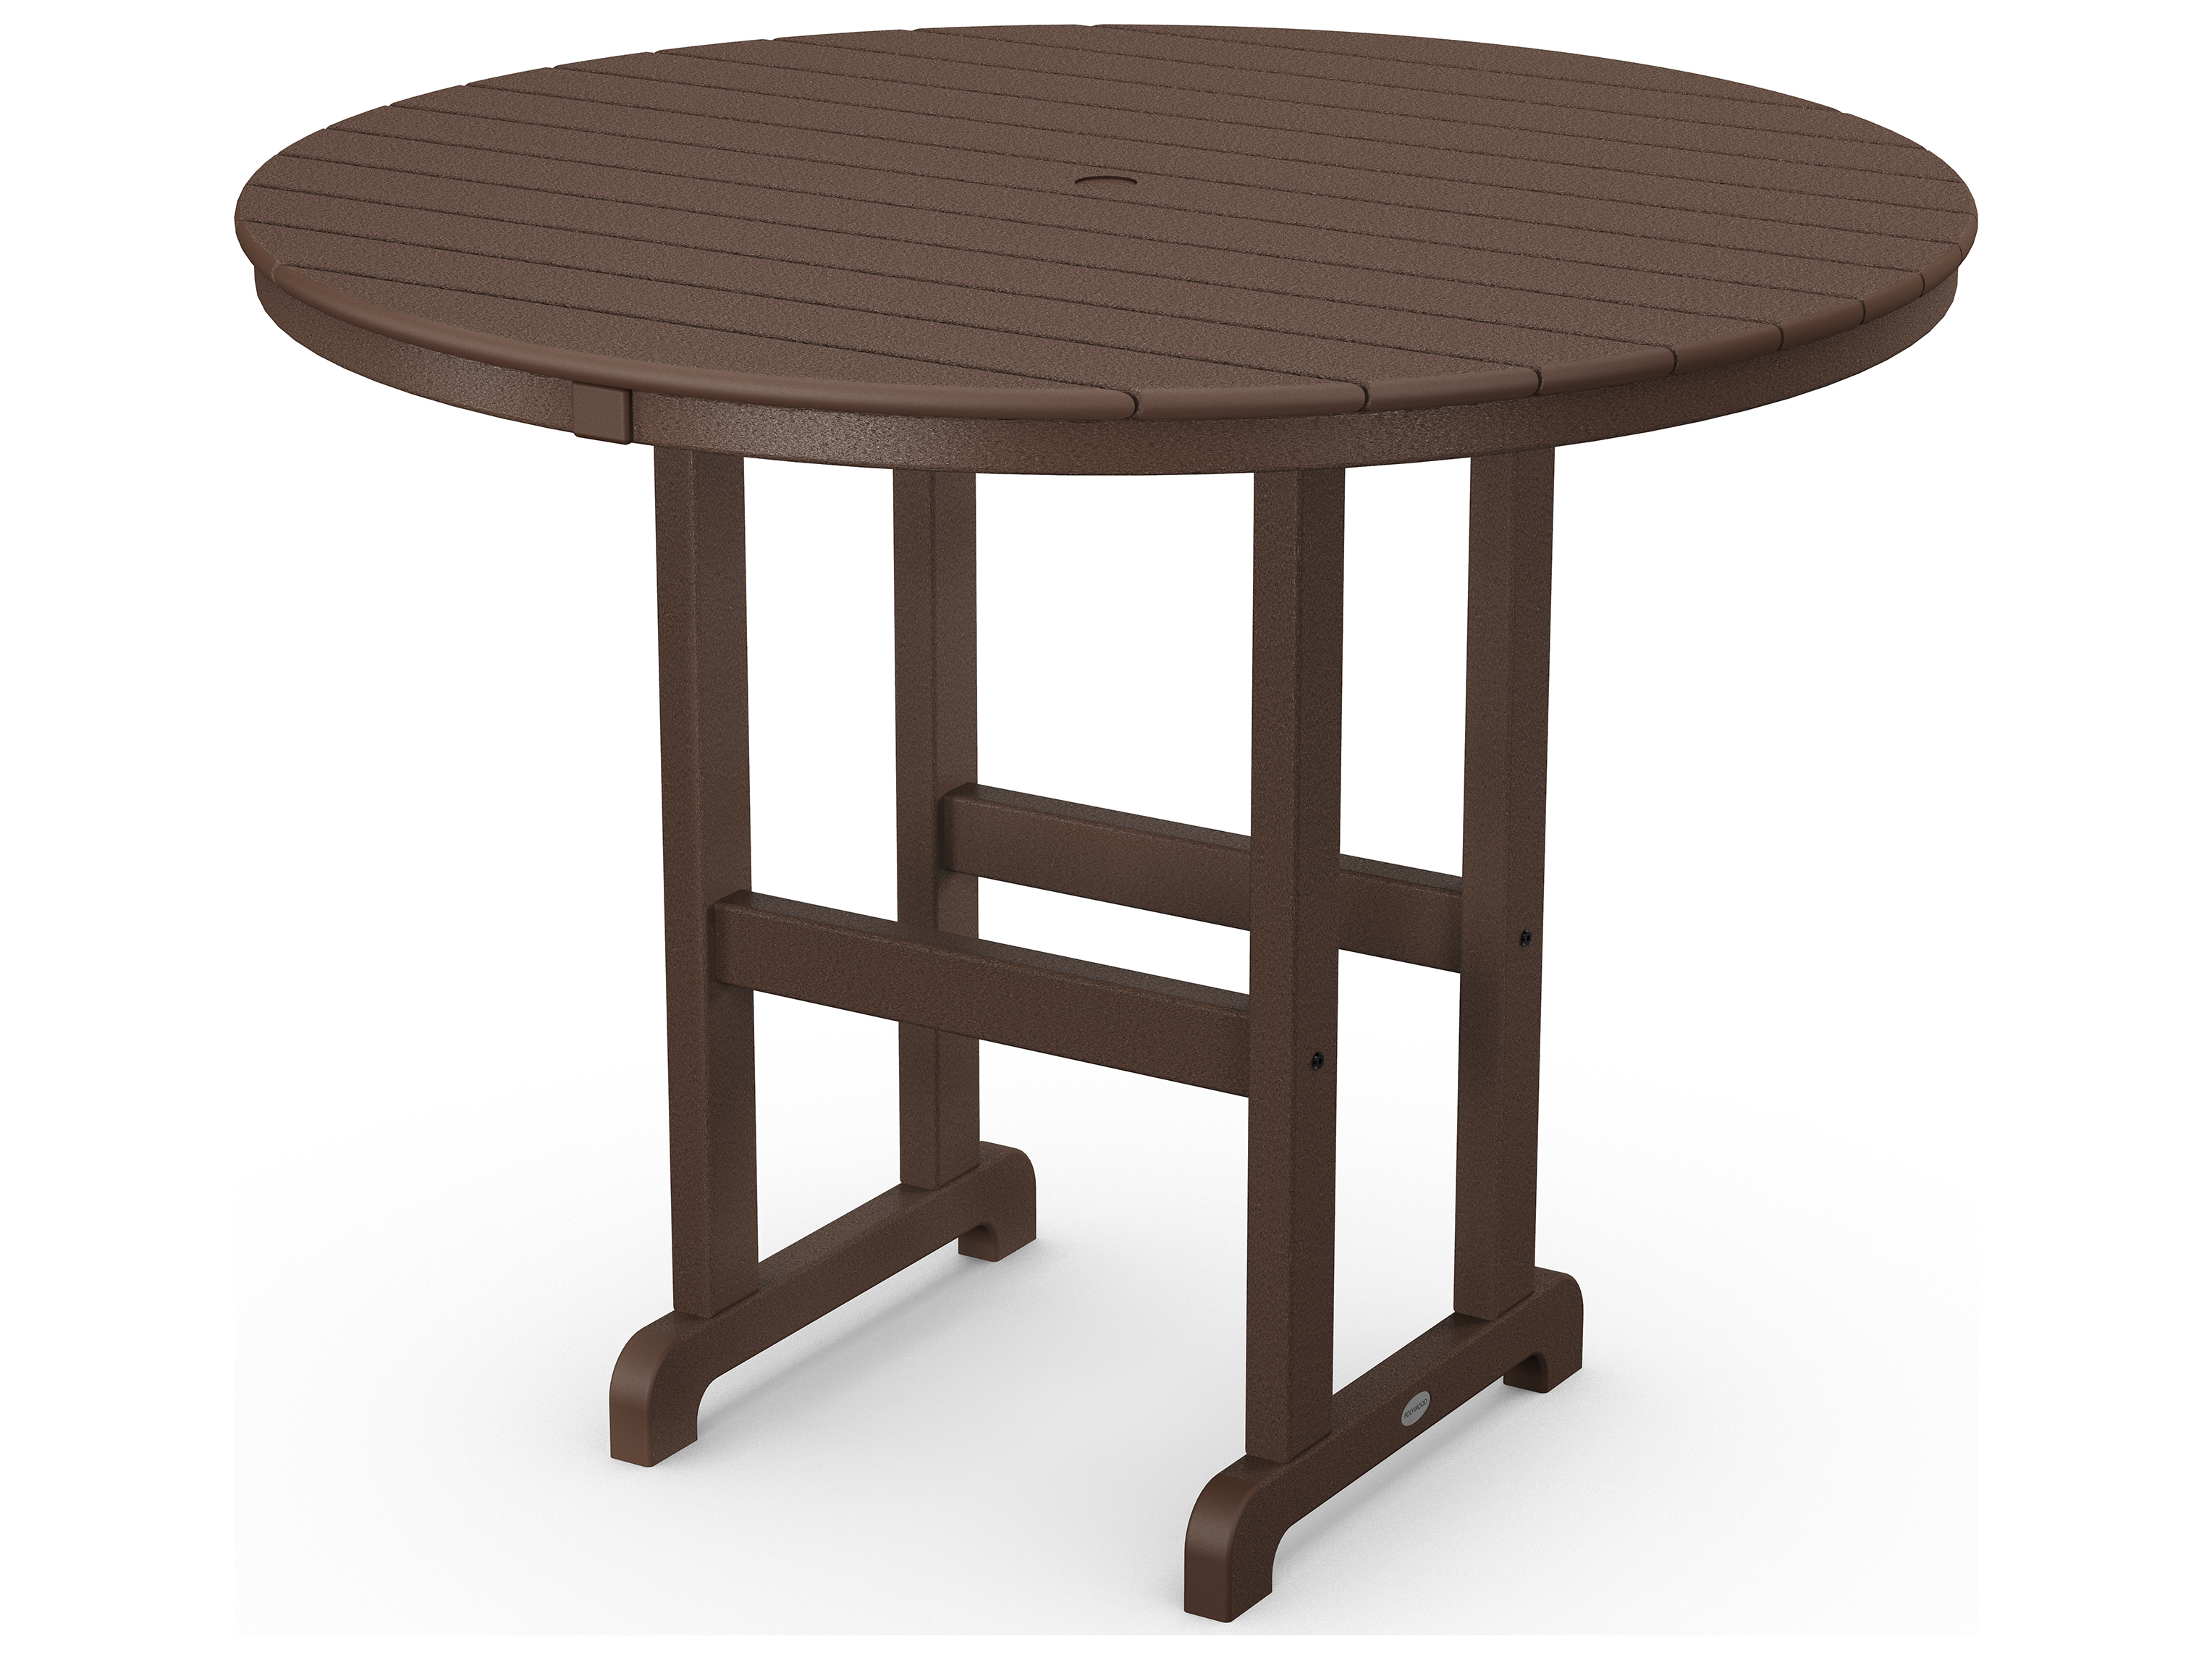 Counter Height Picnic Table : ... counter height table pwrrt248 traditional tables collection by